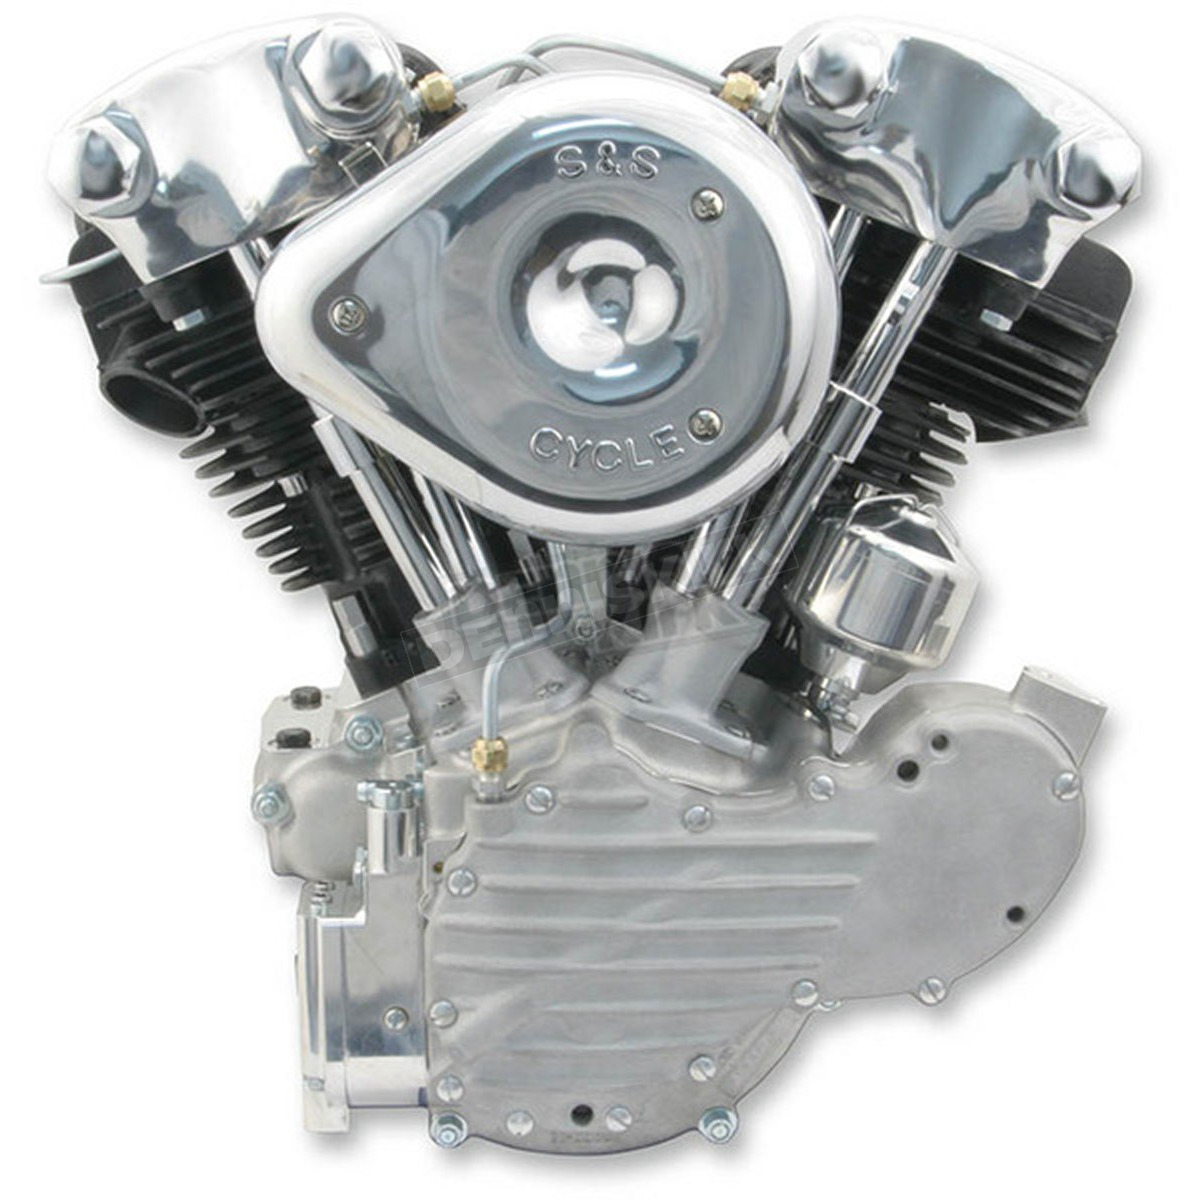 KN93 Complete Engine Assembly - 106-2560 ...